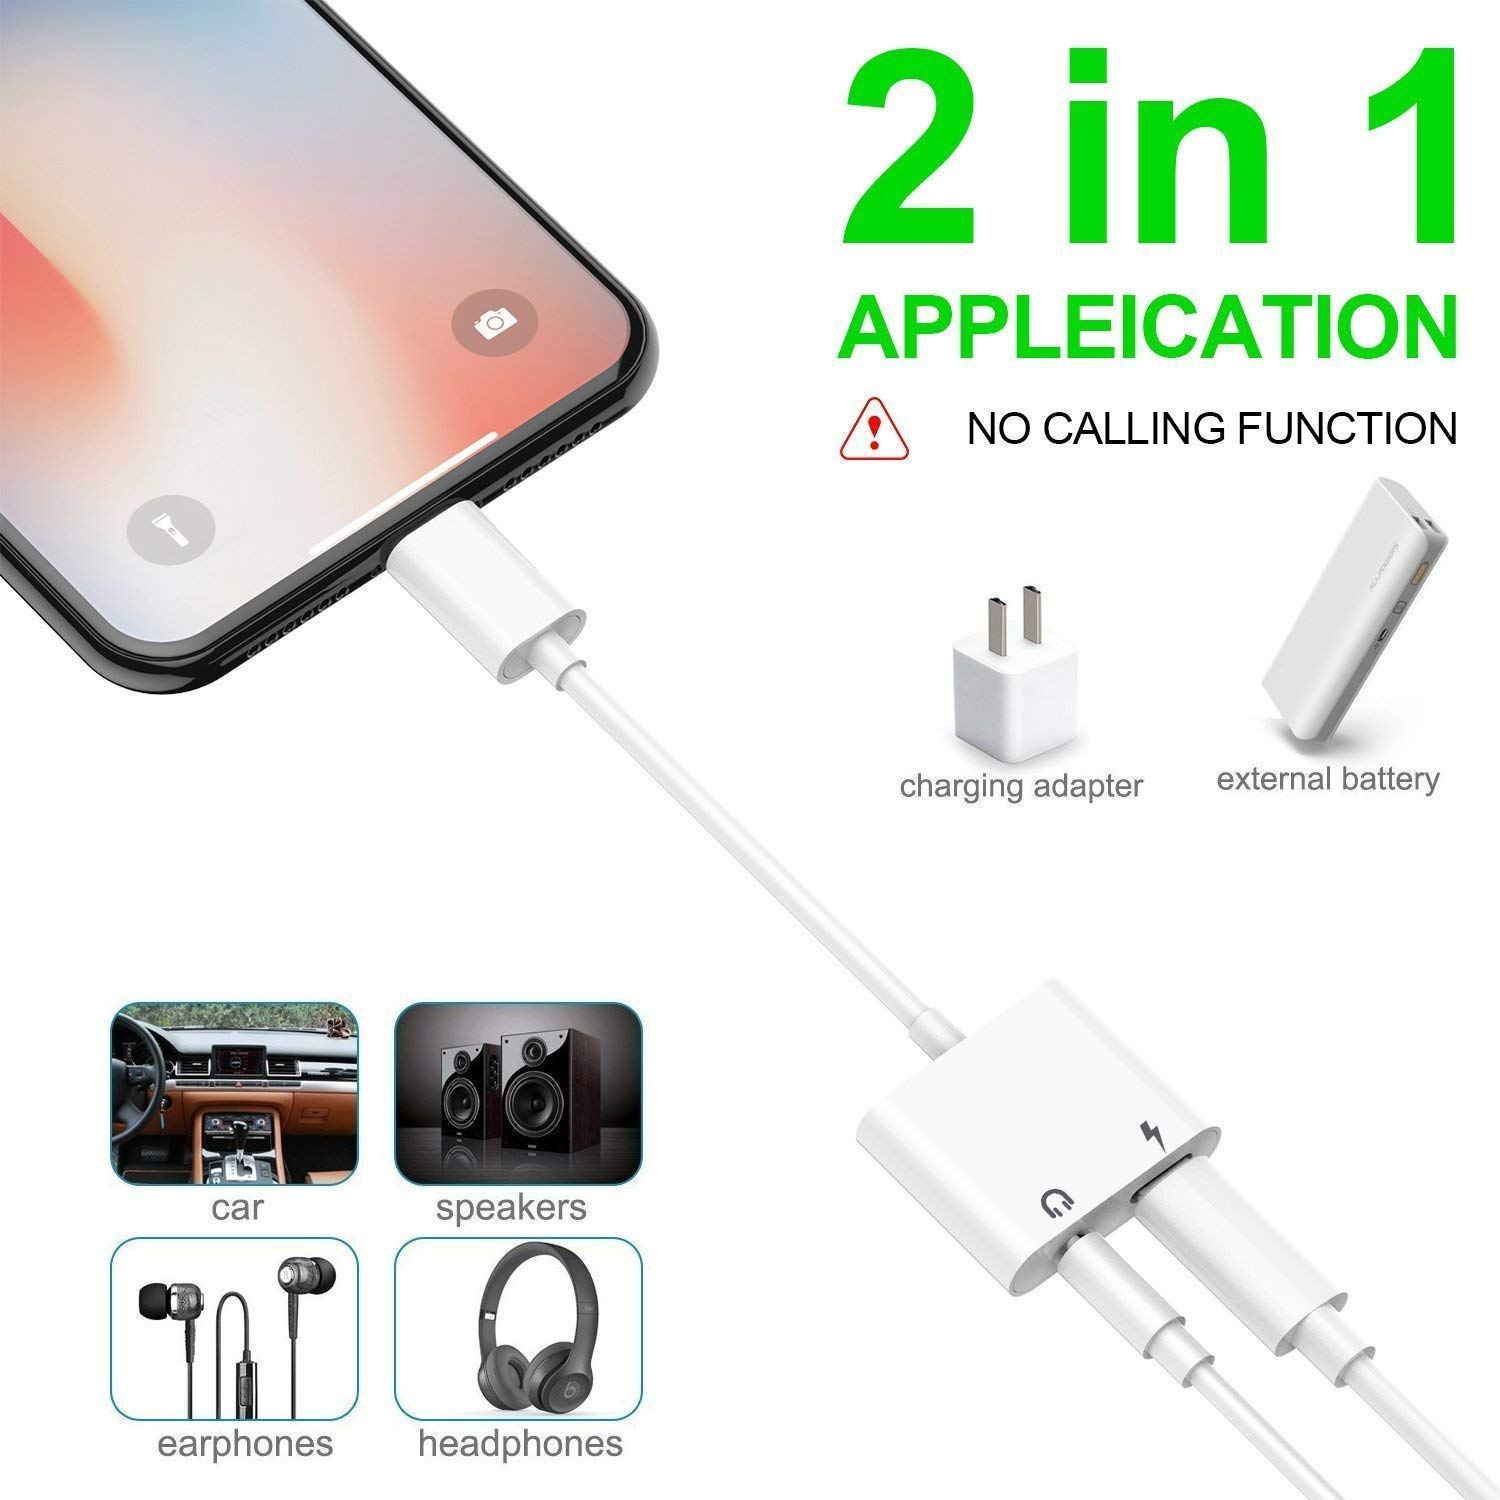 LAXTEK – iPhone Audio Headphone 2 in 1 Charge Audio Jack Adapter 3.5mm Dual Adaptor Earphone aux Splitter Compatible iPhone/iPad